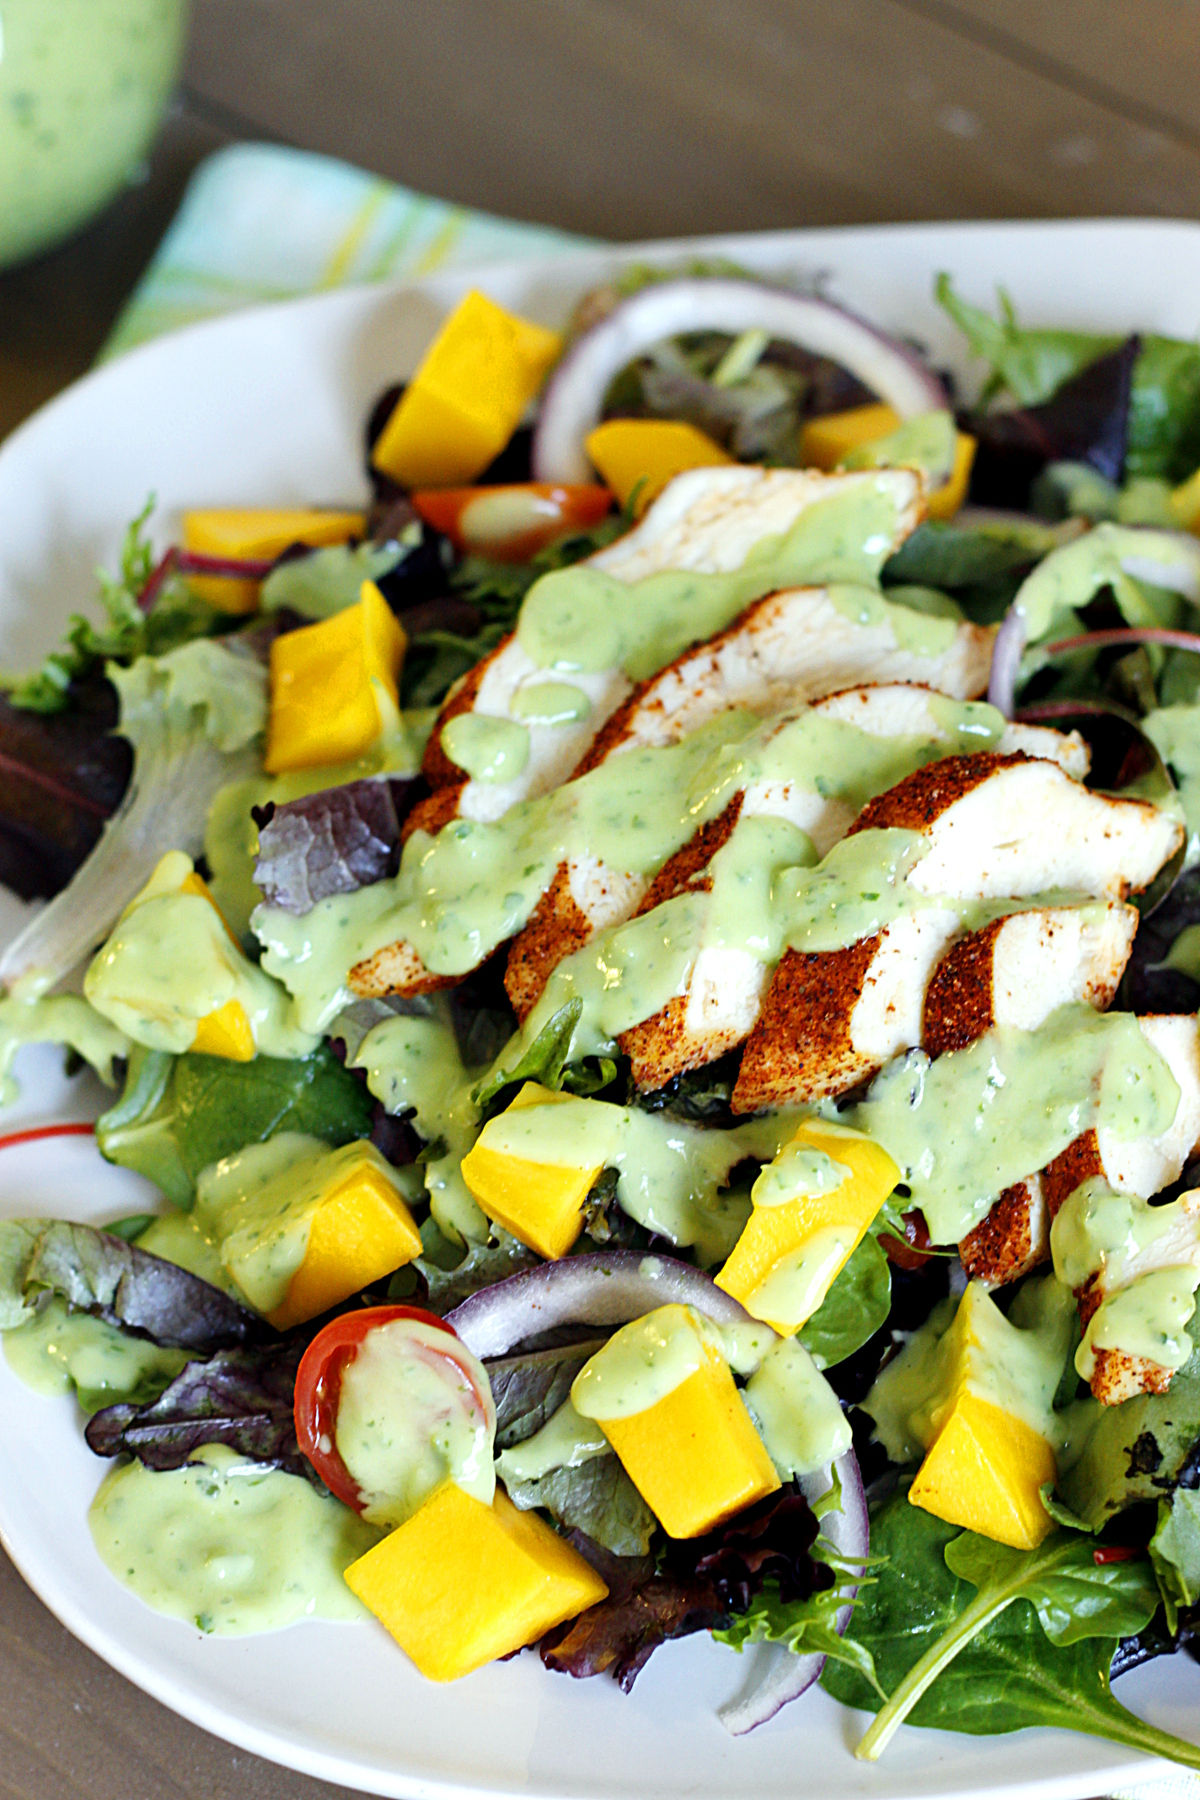 Blackened Chicken and Mango Salad with Creamy Avocado Dressing